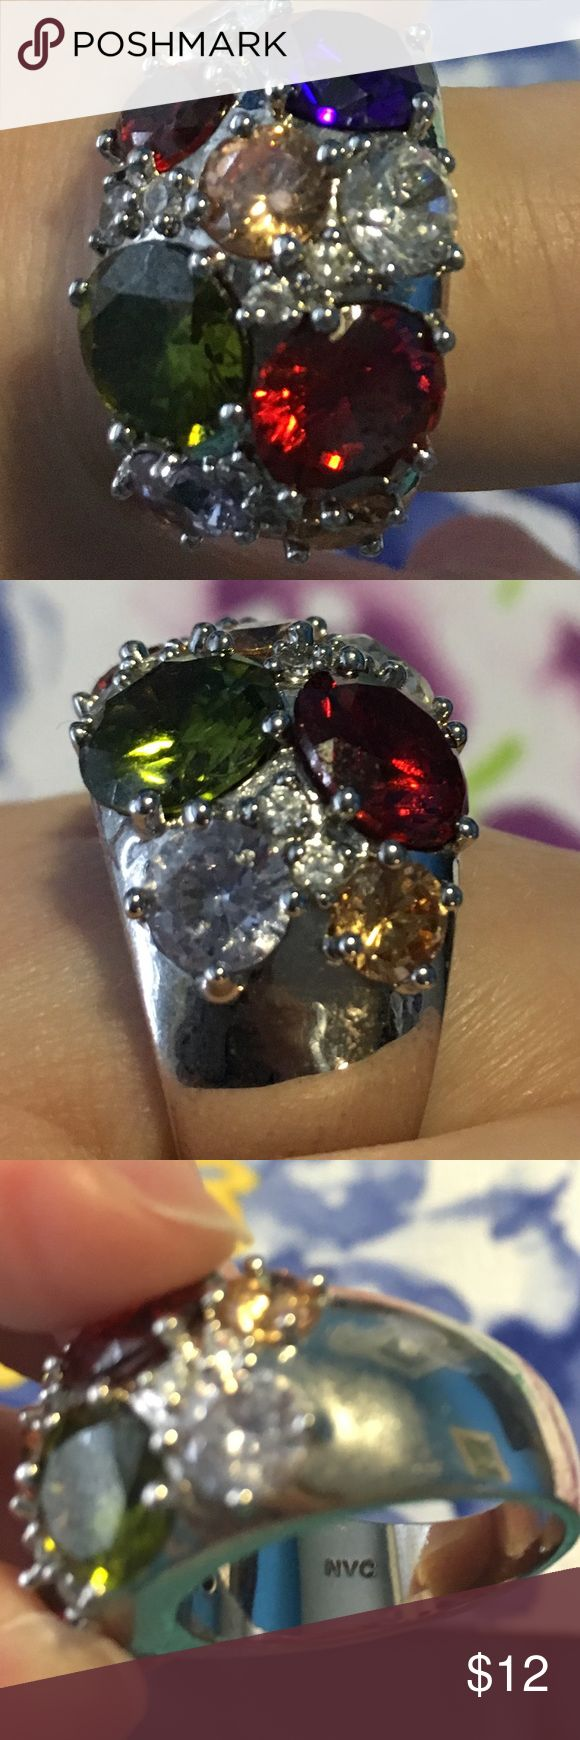 Women's Ring Lovely Avon ring size 9! As pictured!  🚭Smoke free home! 💙Offers are welcomed💙 Avon Jewelry Rings